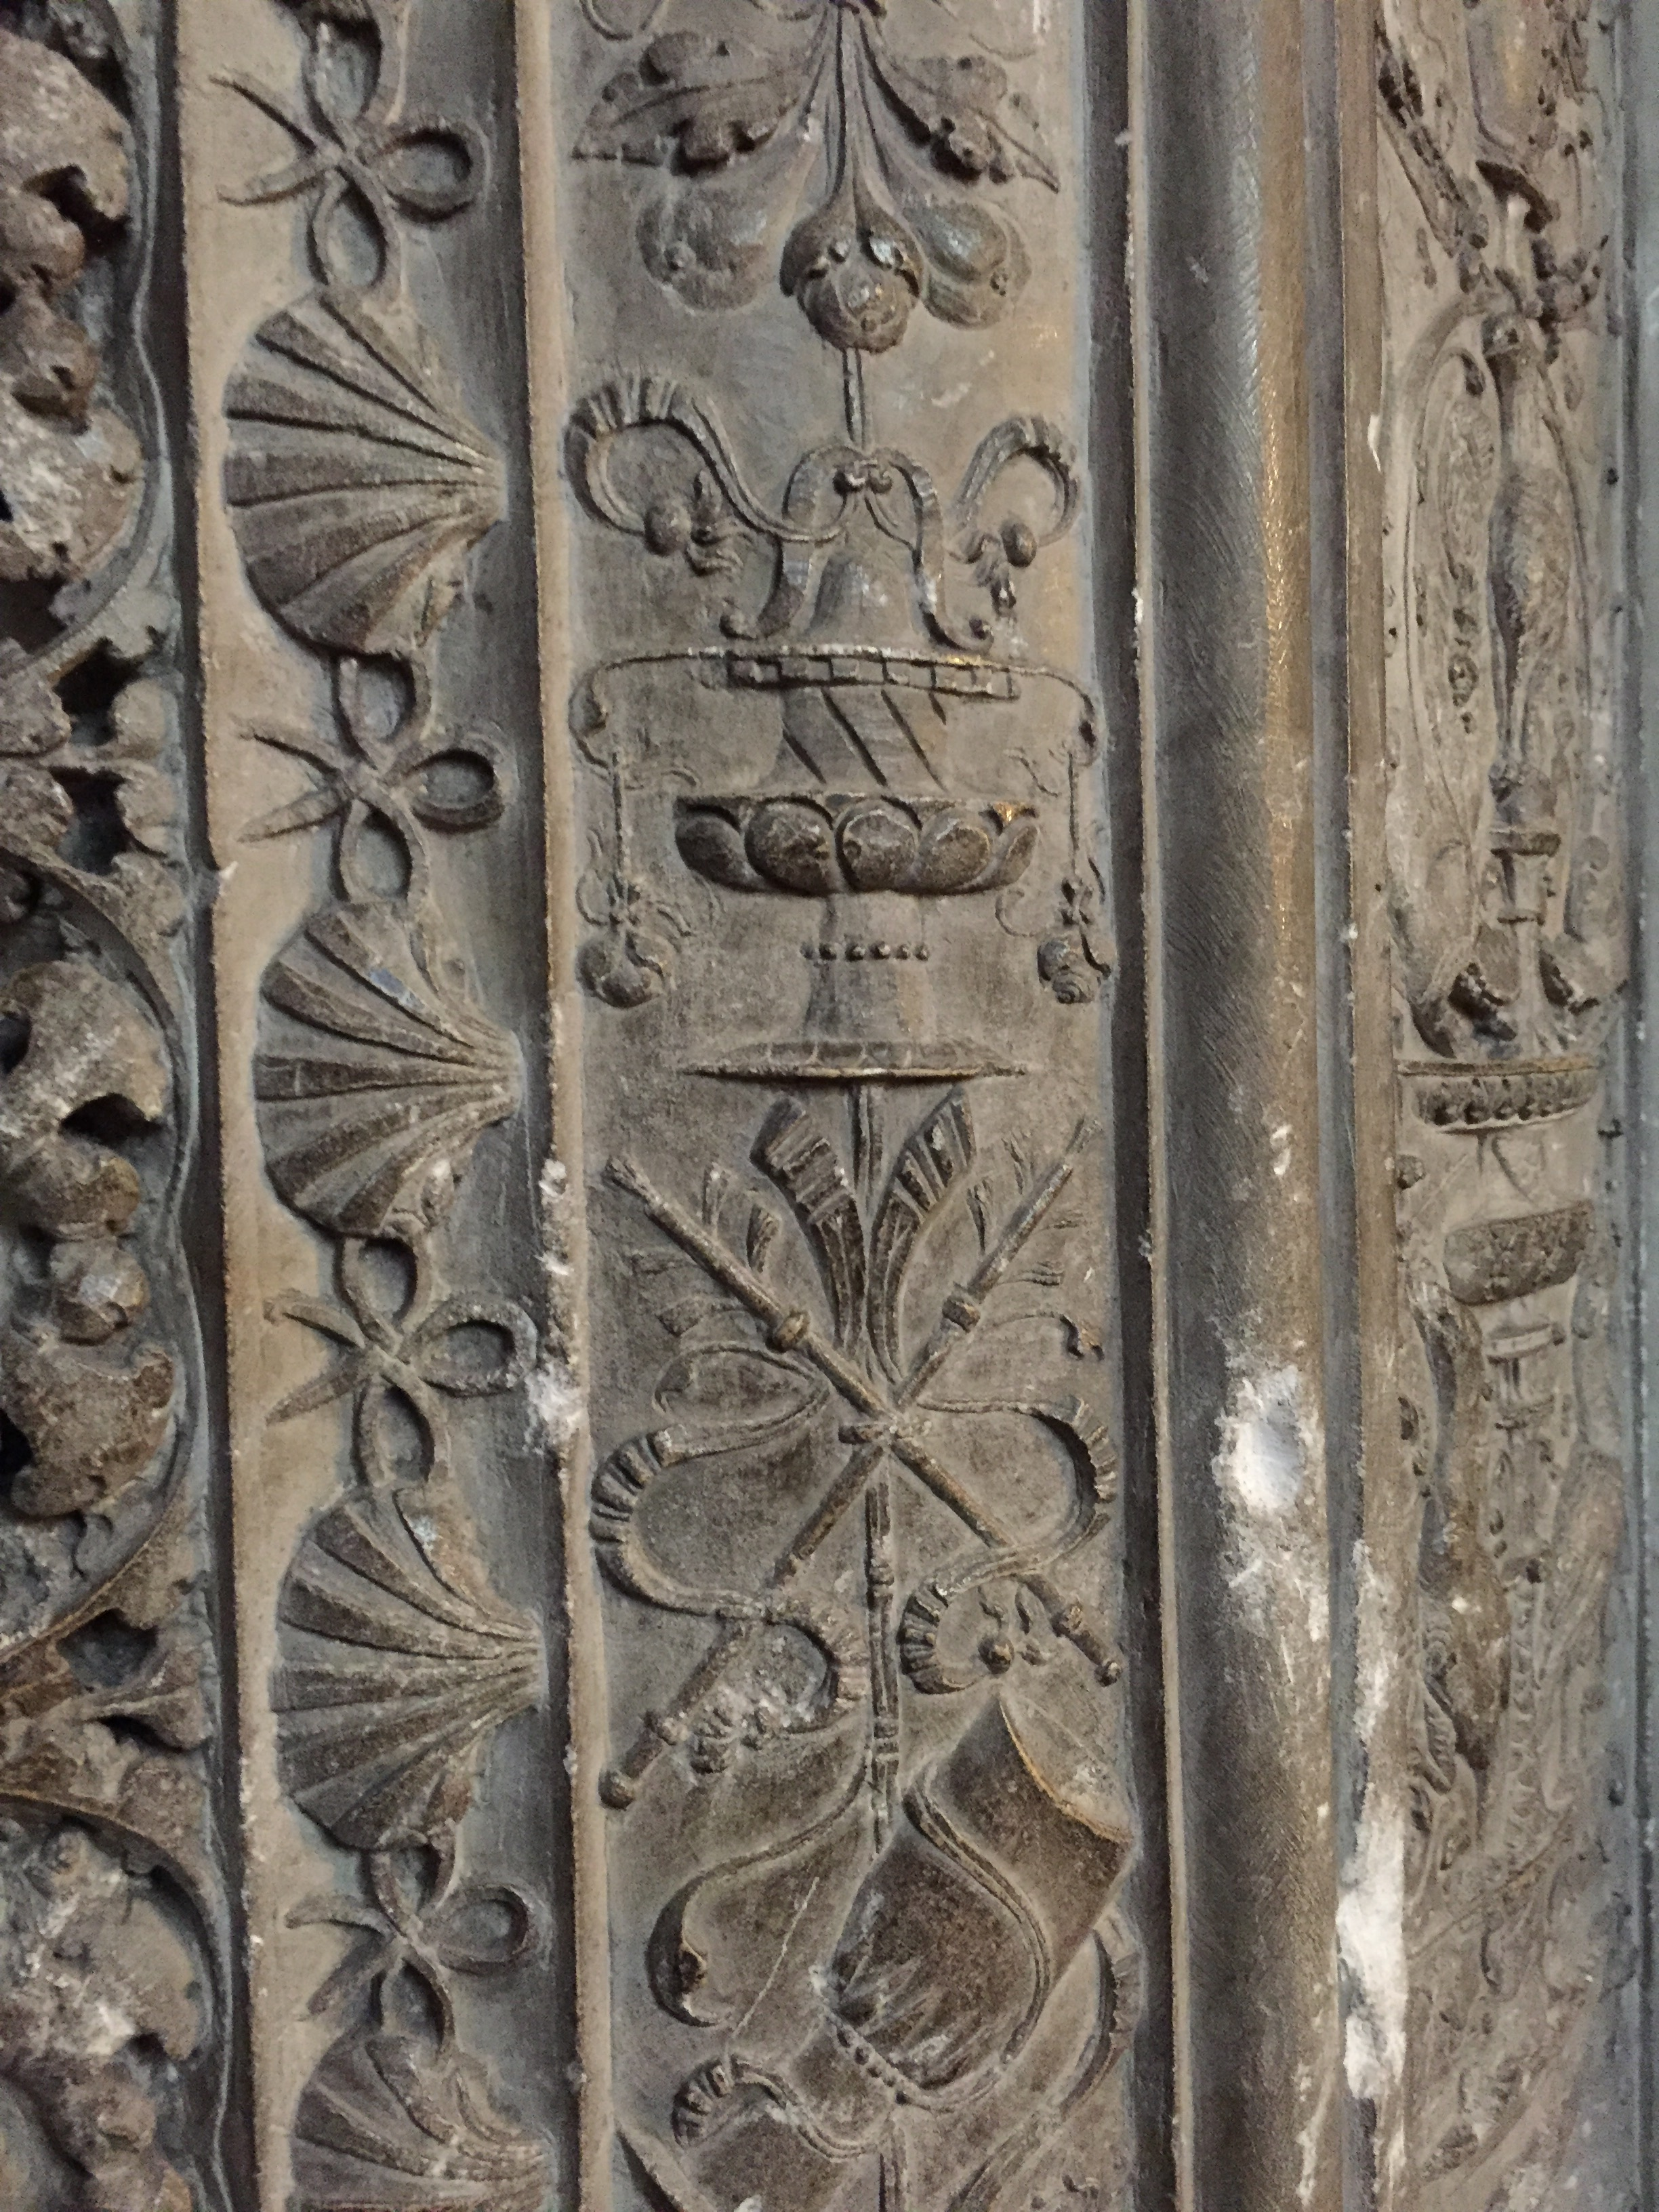 stone carving on the columns inside the church